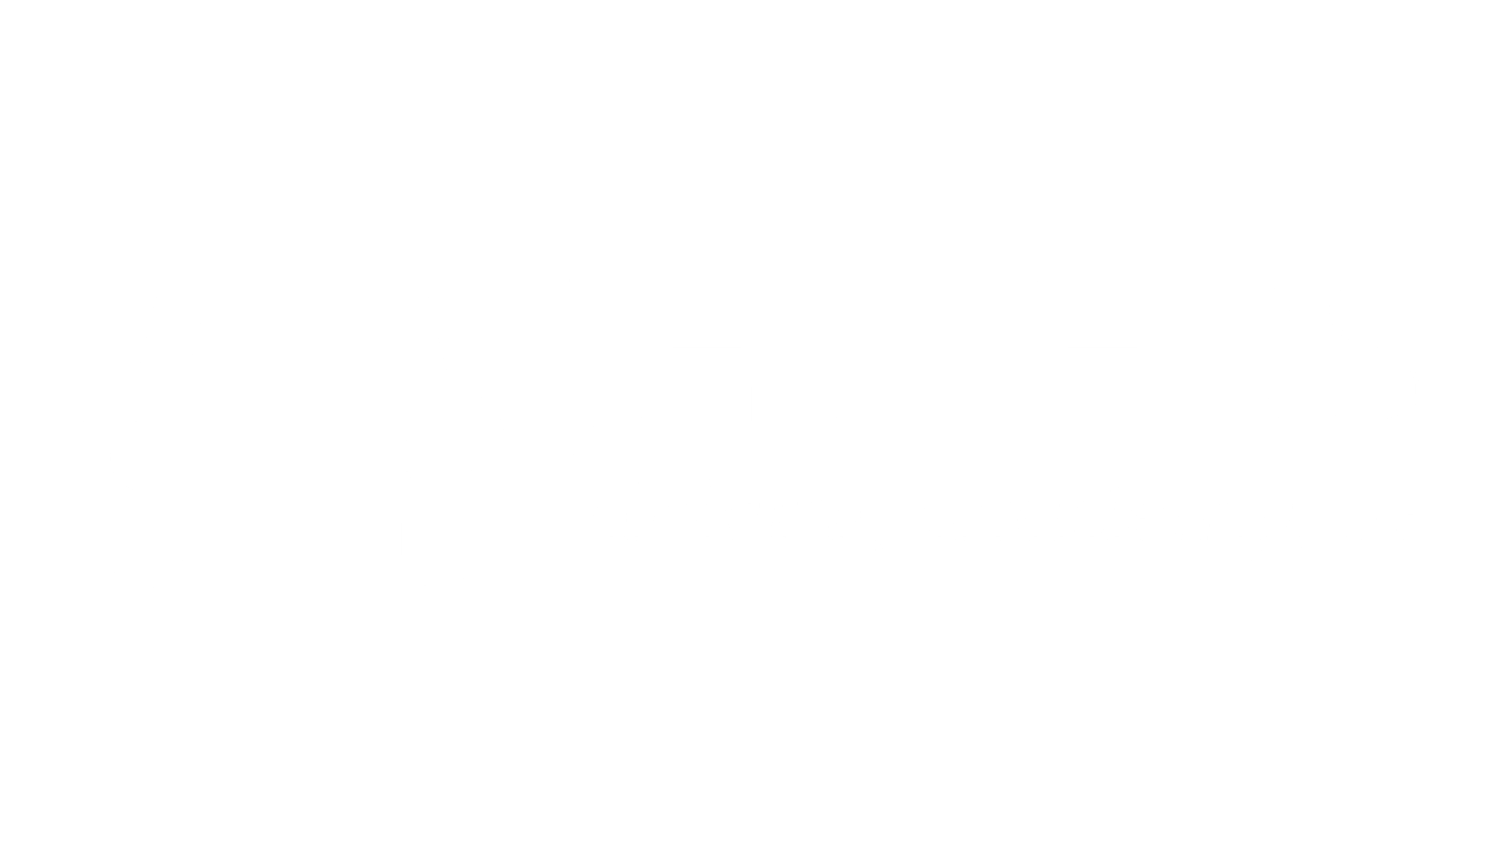 Jeffers Driving Academy